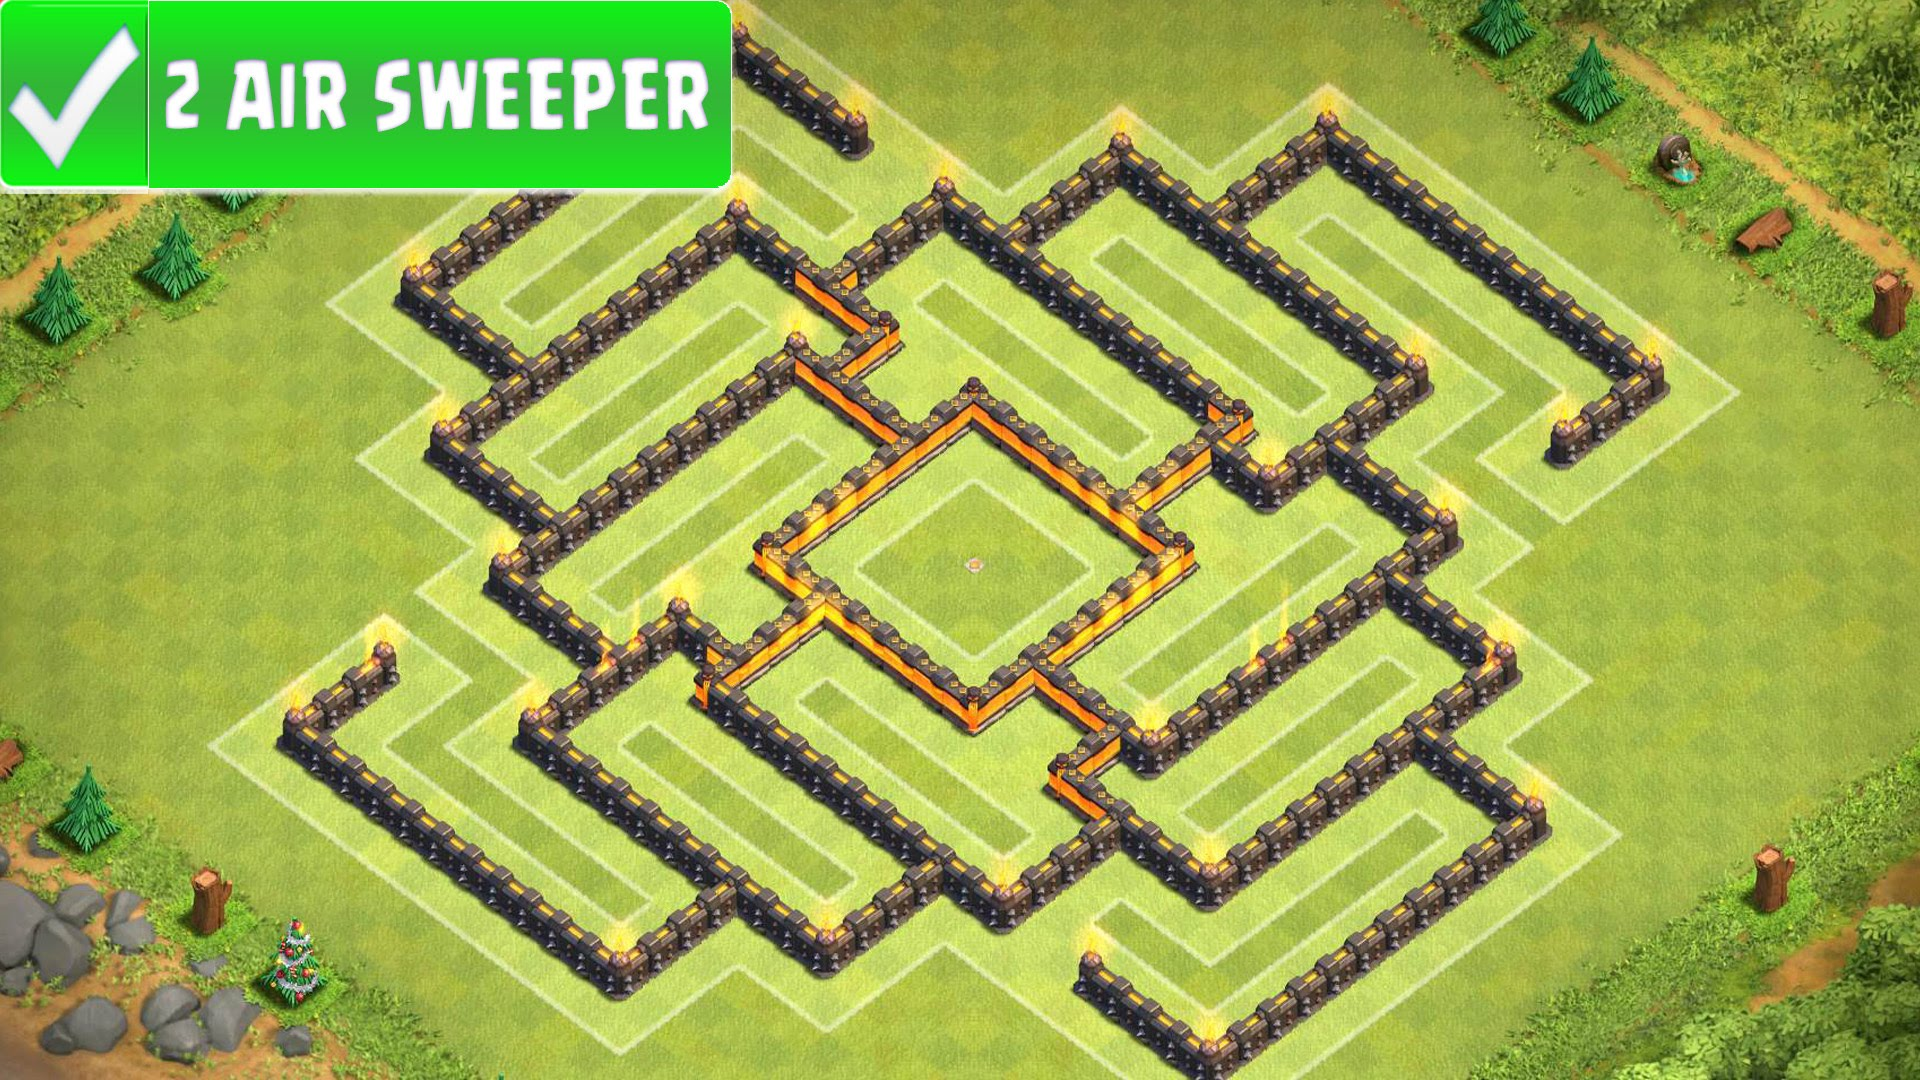 Coc Th9 Farming Base 2